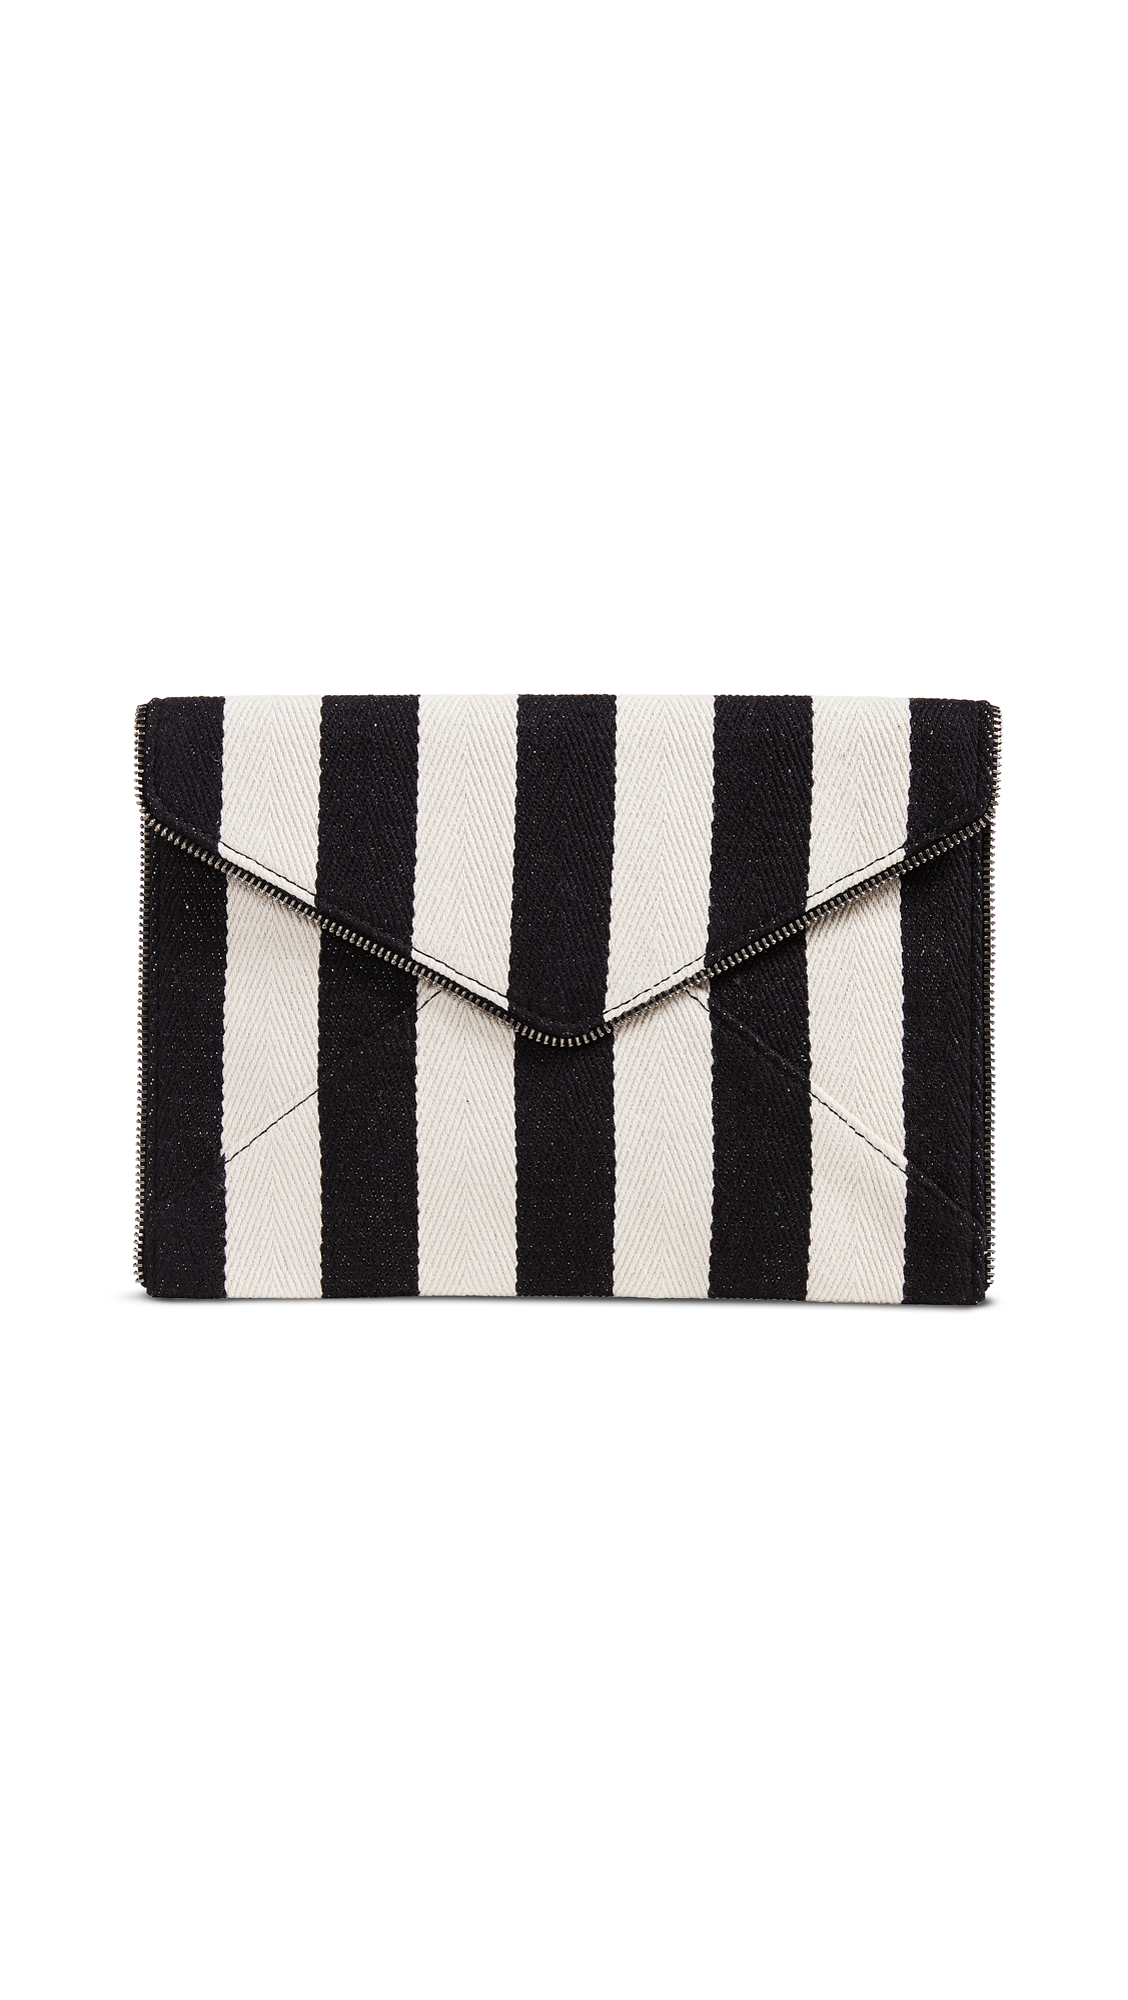 Leo Clutch, Black/White